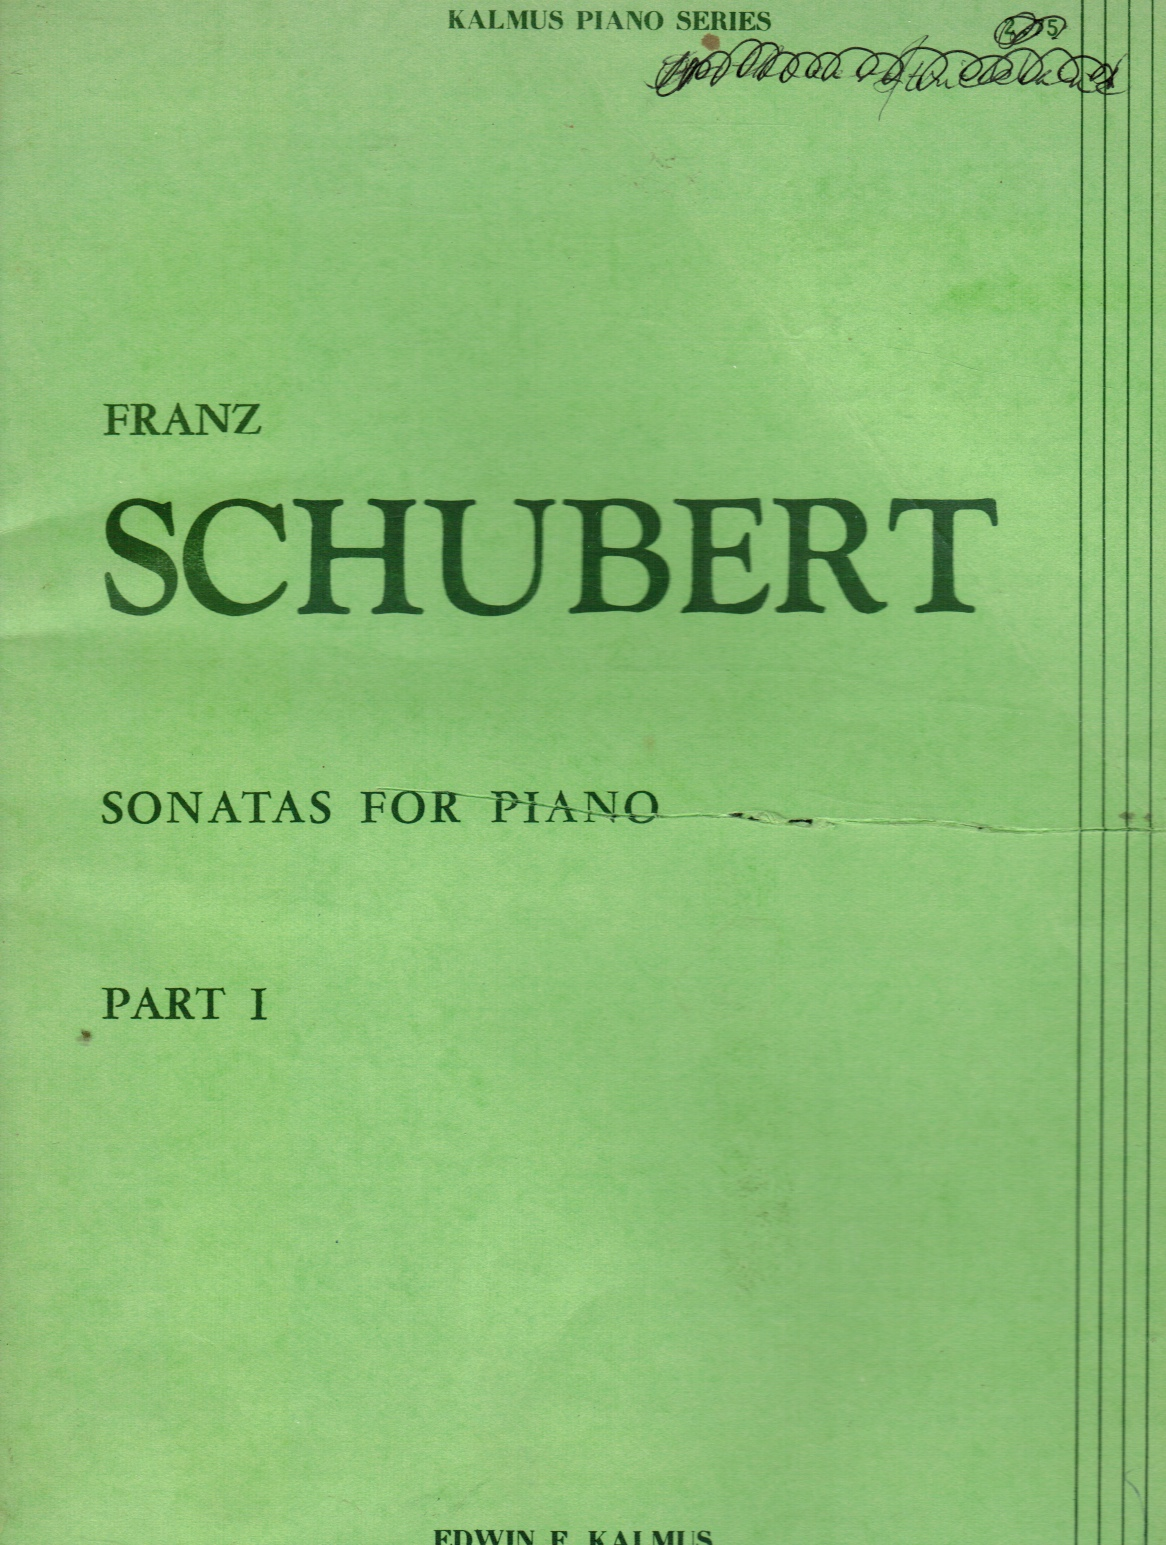 Image for Franz Schubert Sonatas for Piano. Part I